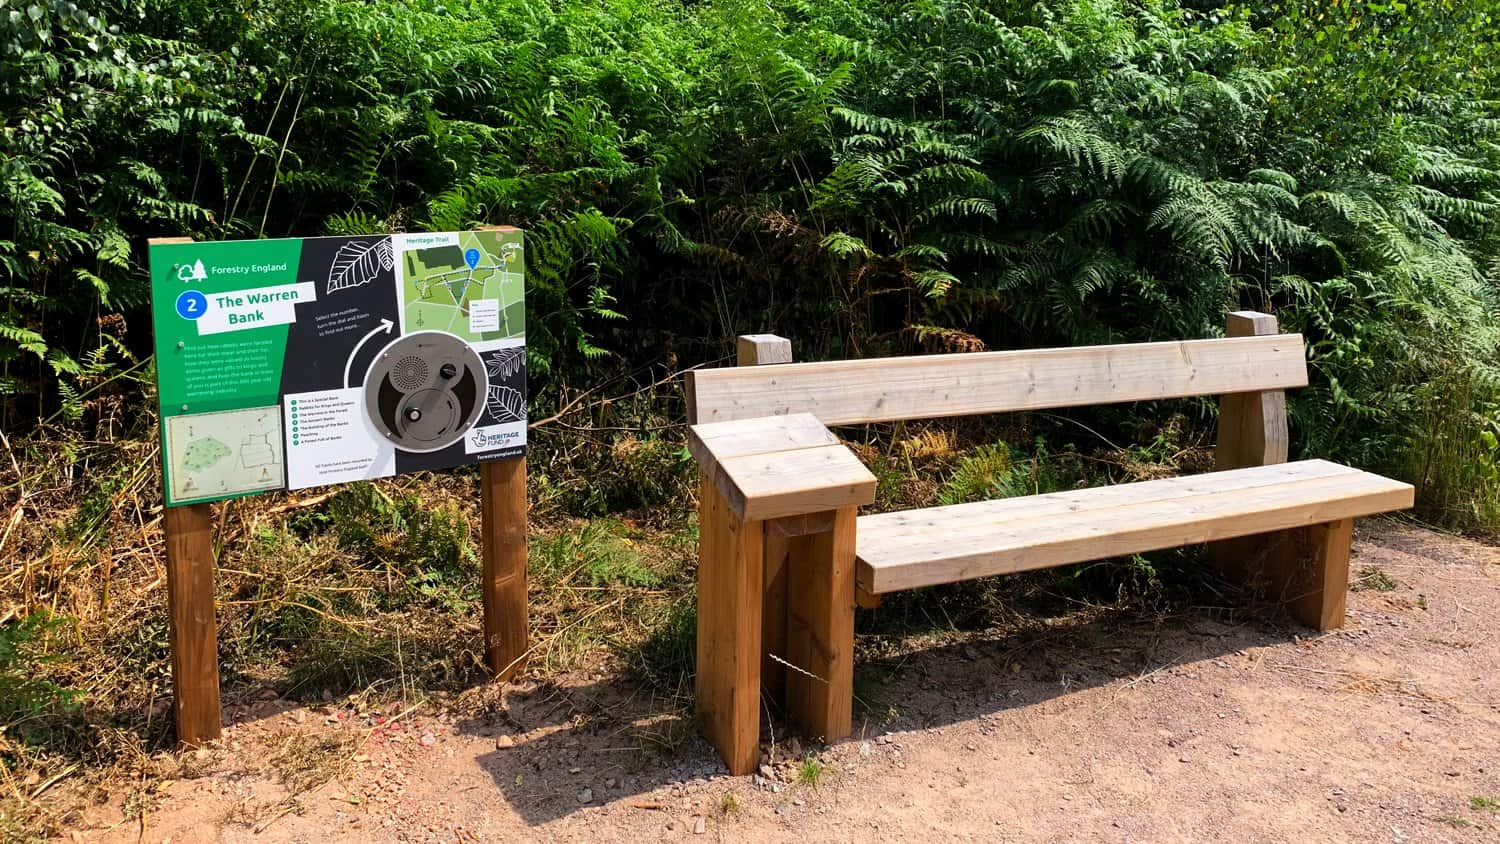 U-Turn Round installed at High Lodge Heritage Trail 2